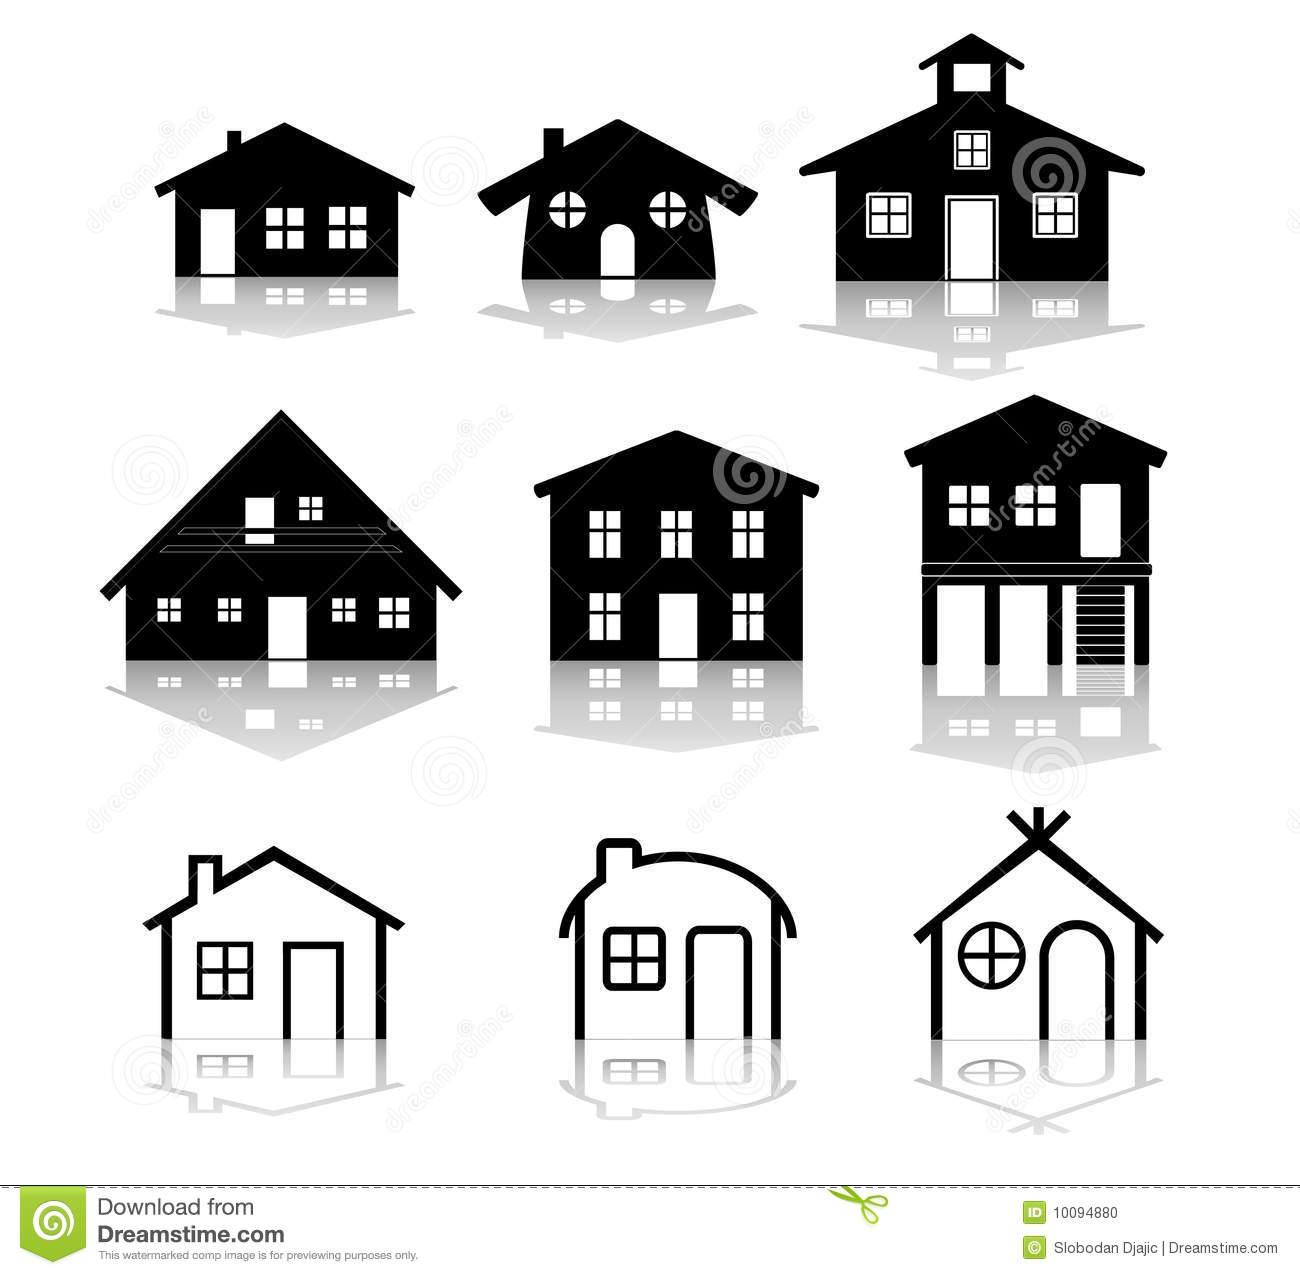 Simple House Vector Illustrations Stock Photo - Image ...